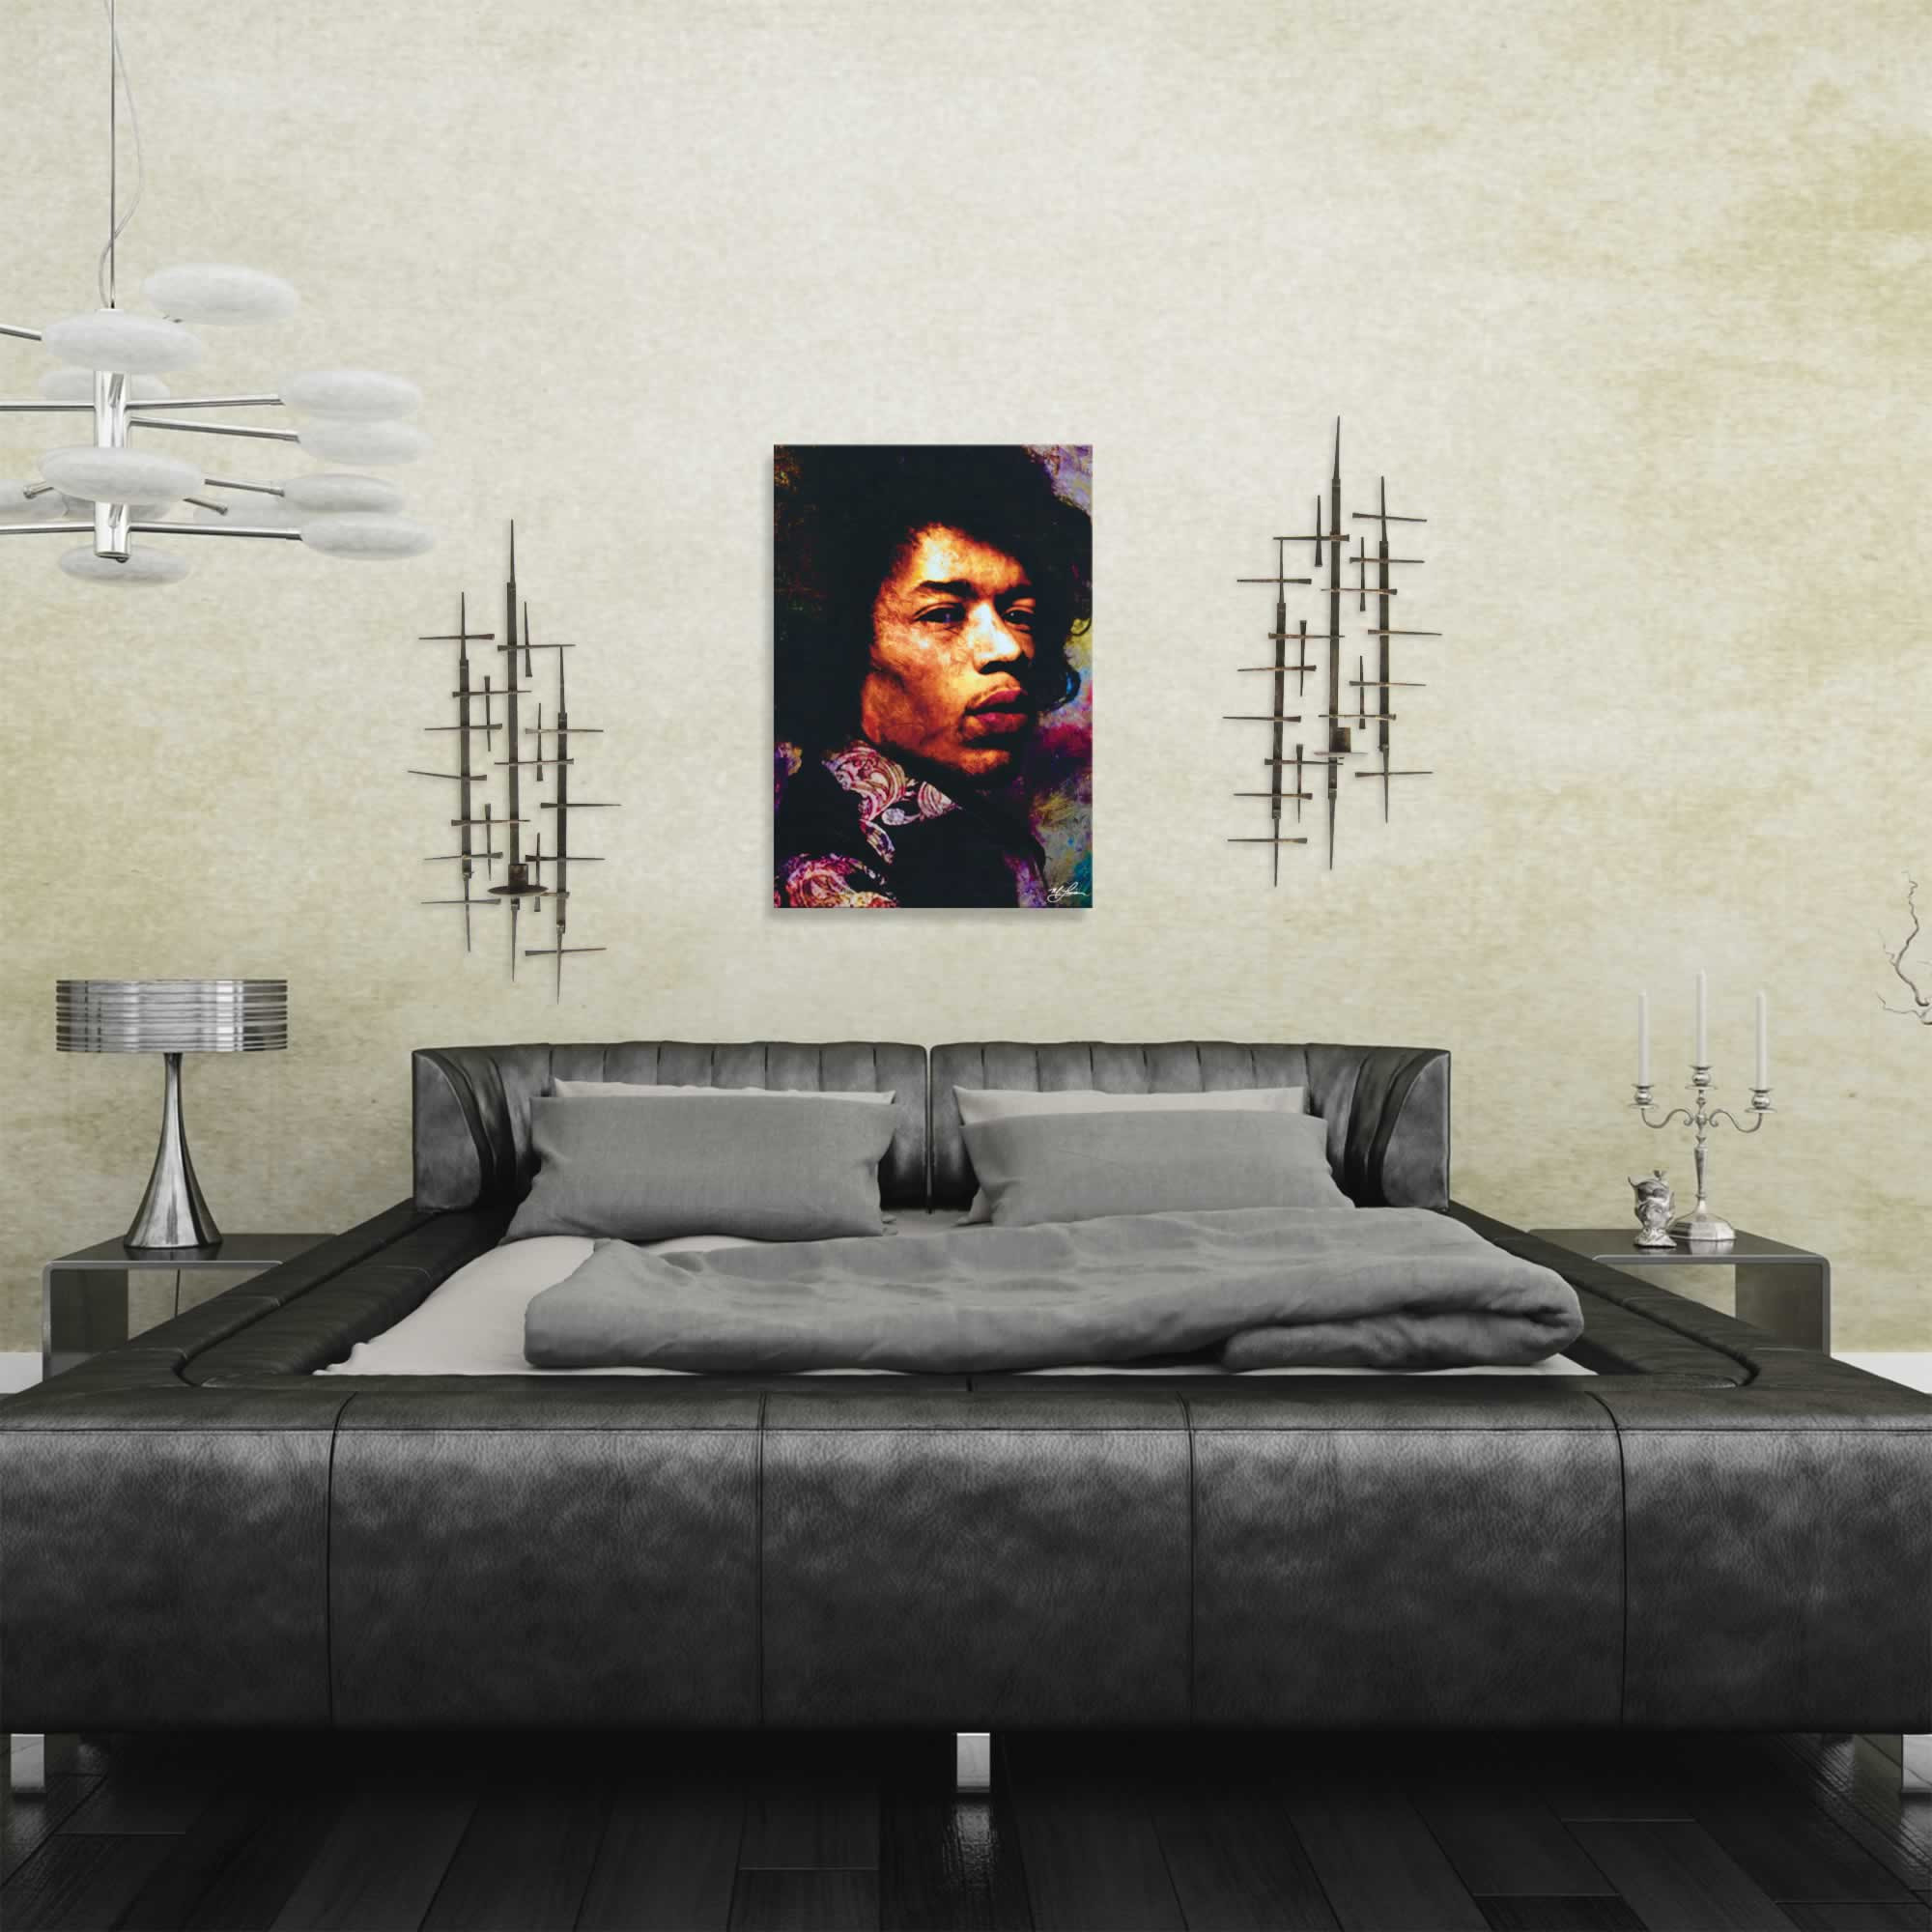 Jimi Hendrix Imagination Key | Pop Art Painting by Mark Lewis, Signed & Numbered Limited Edition - ML0017